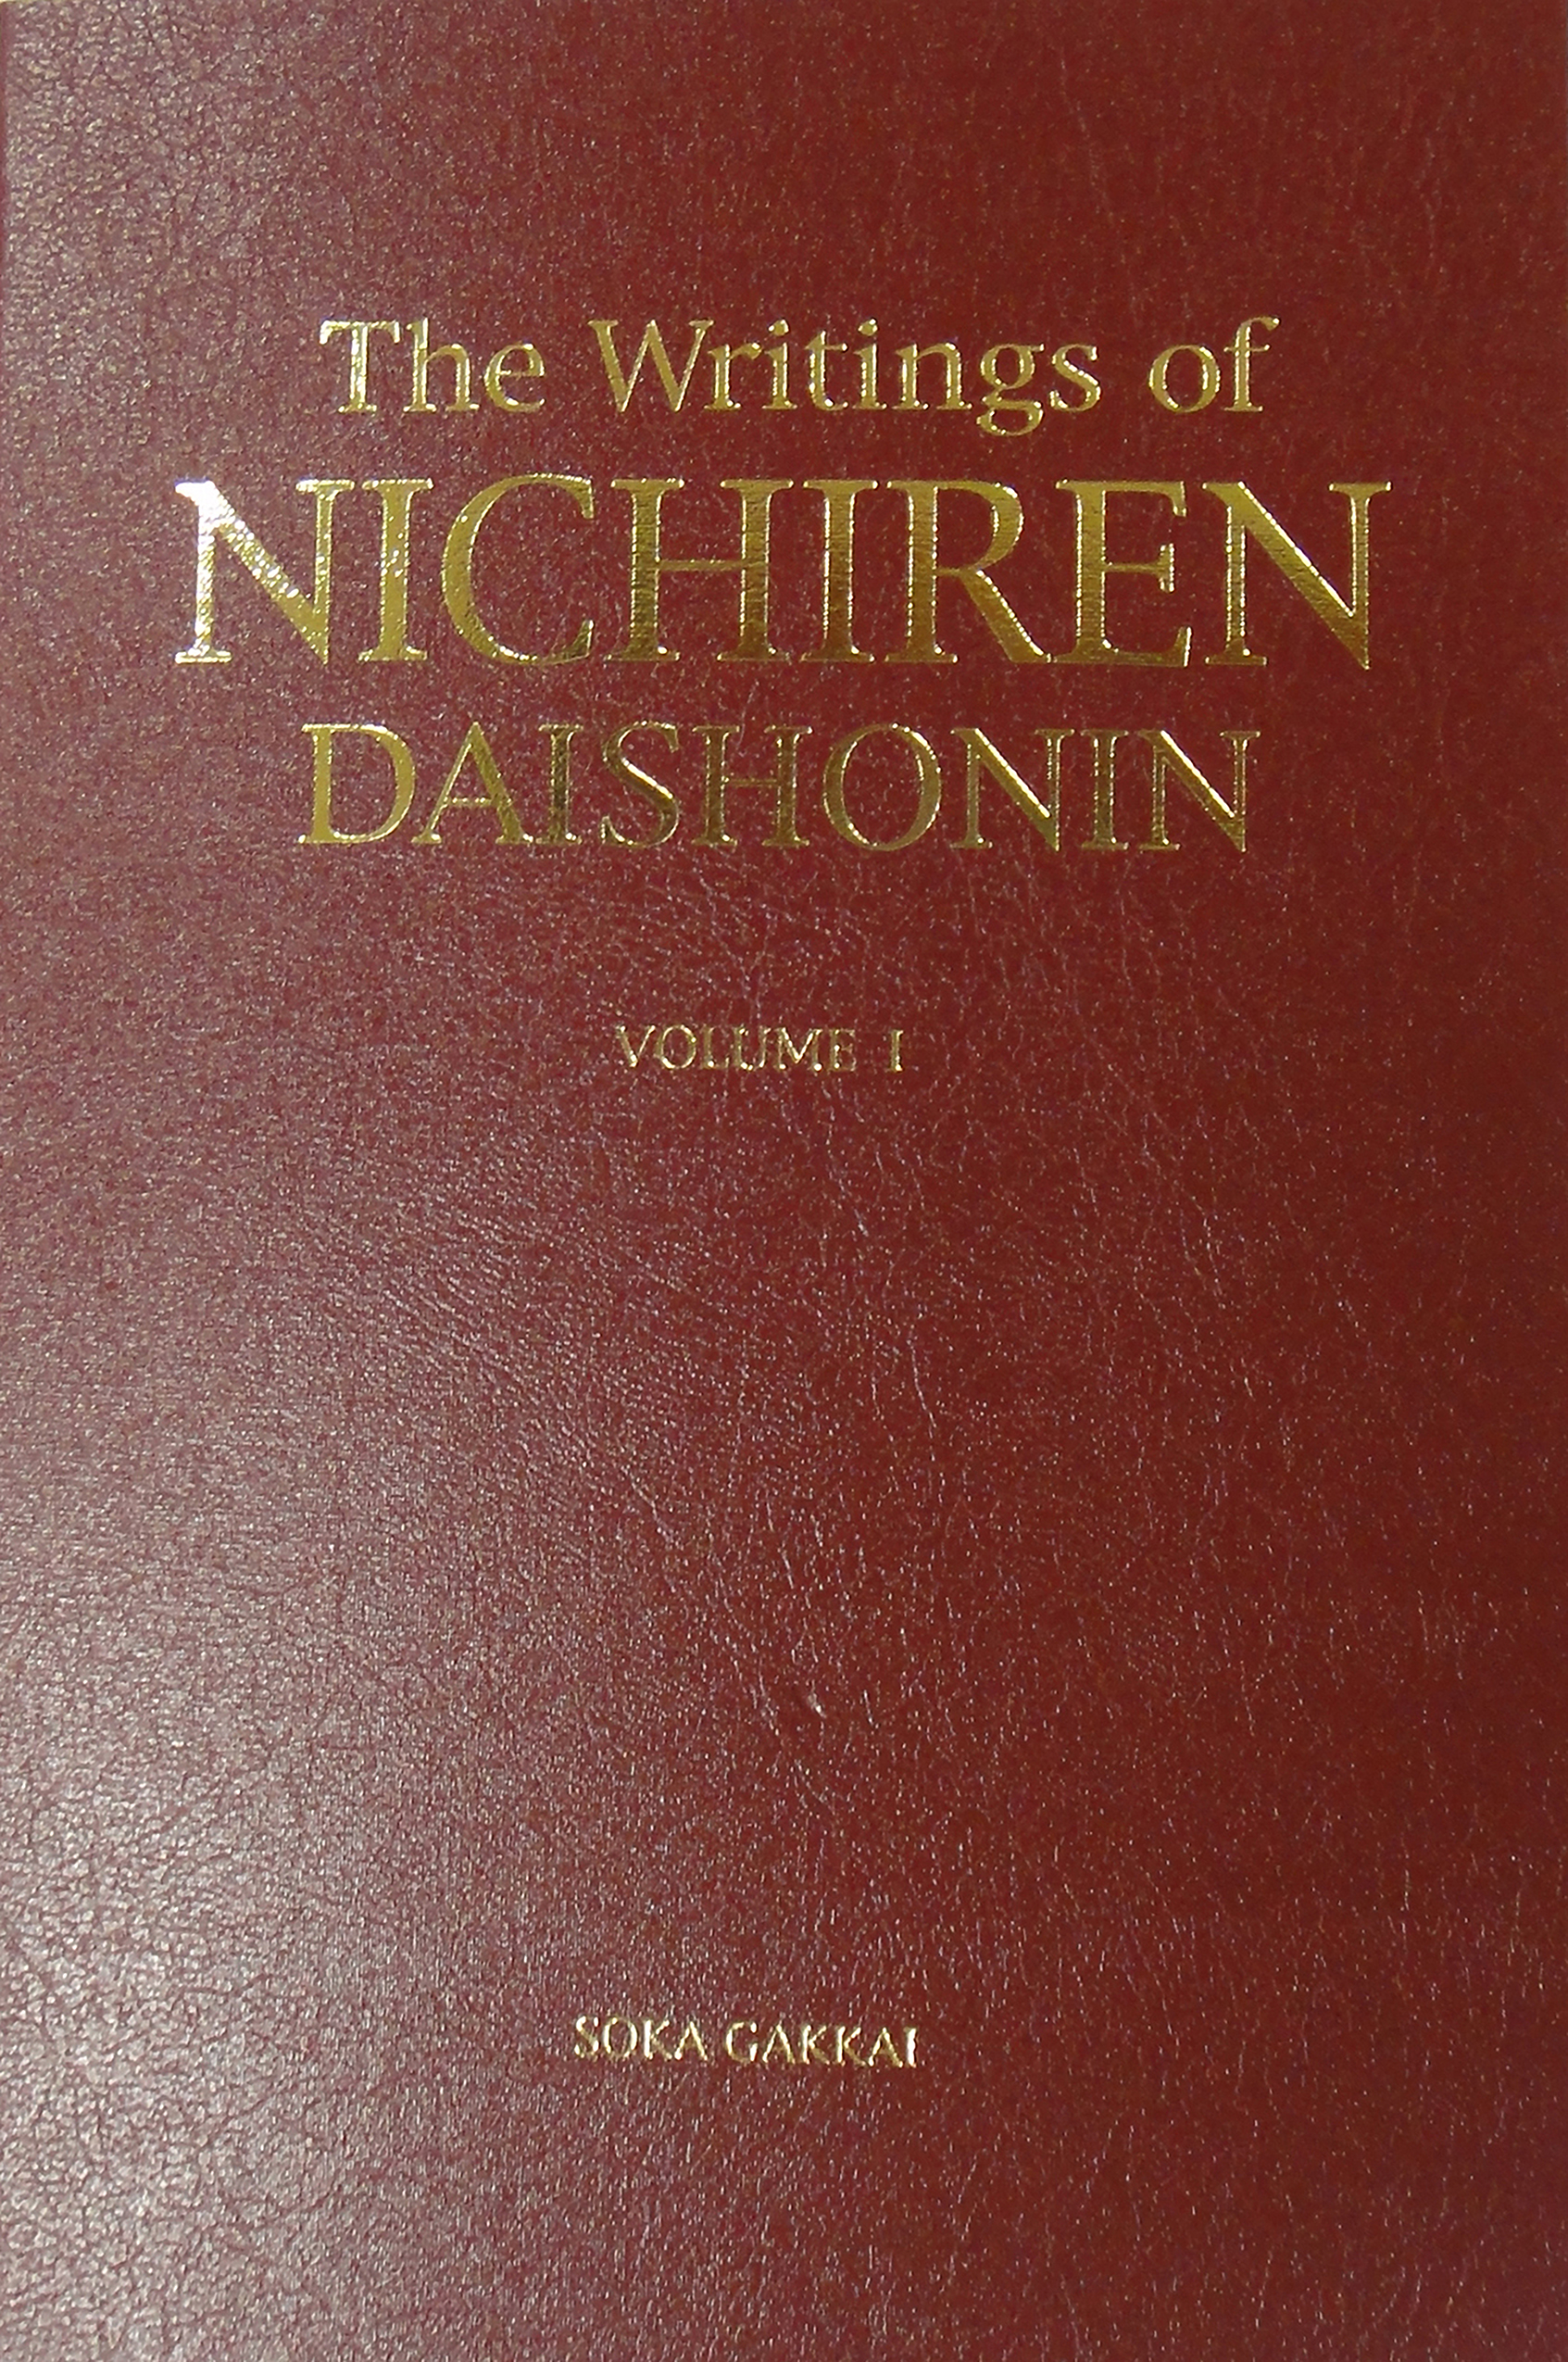 THE WRITINGS OF NICHIREN DAISHONIN - VOLUME 1